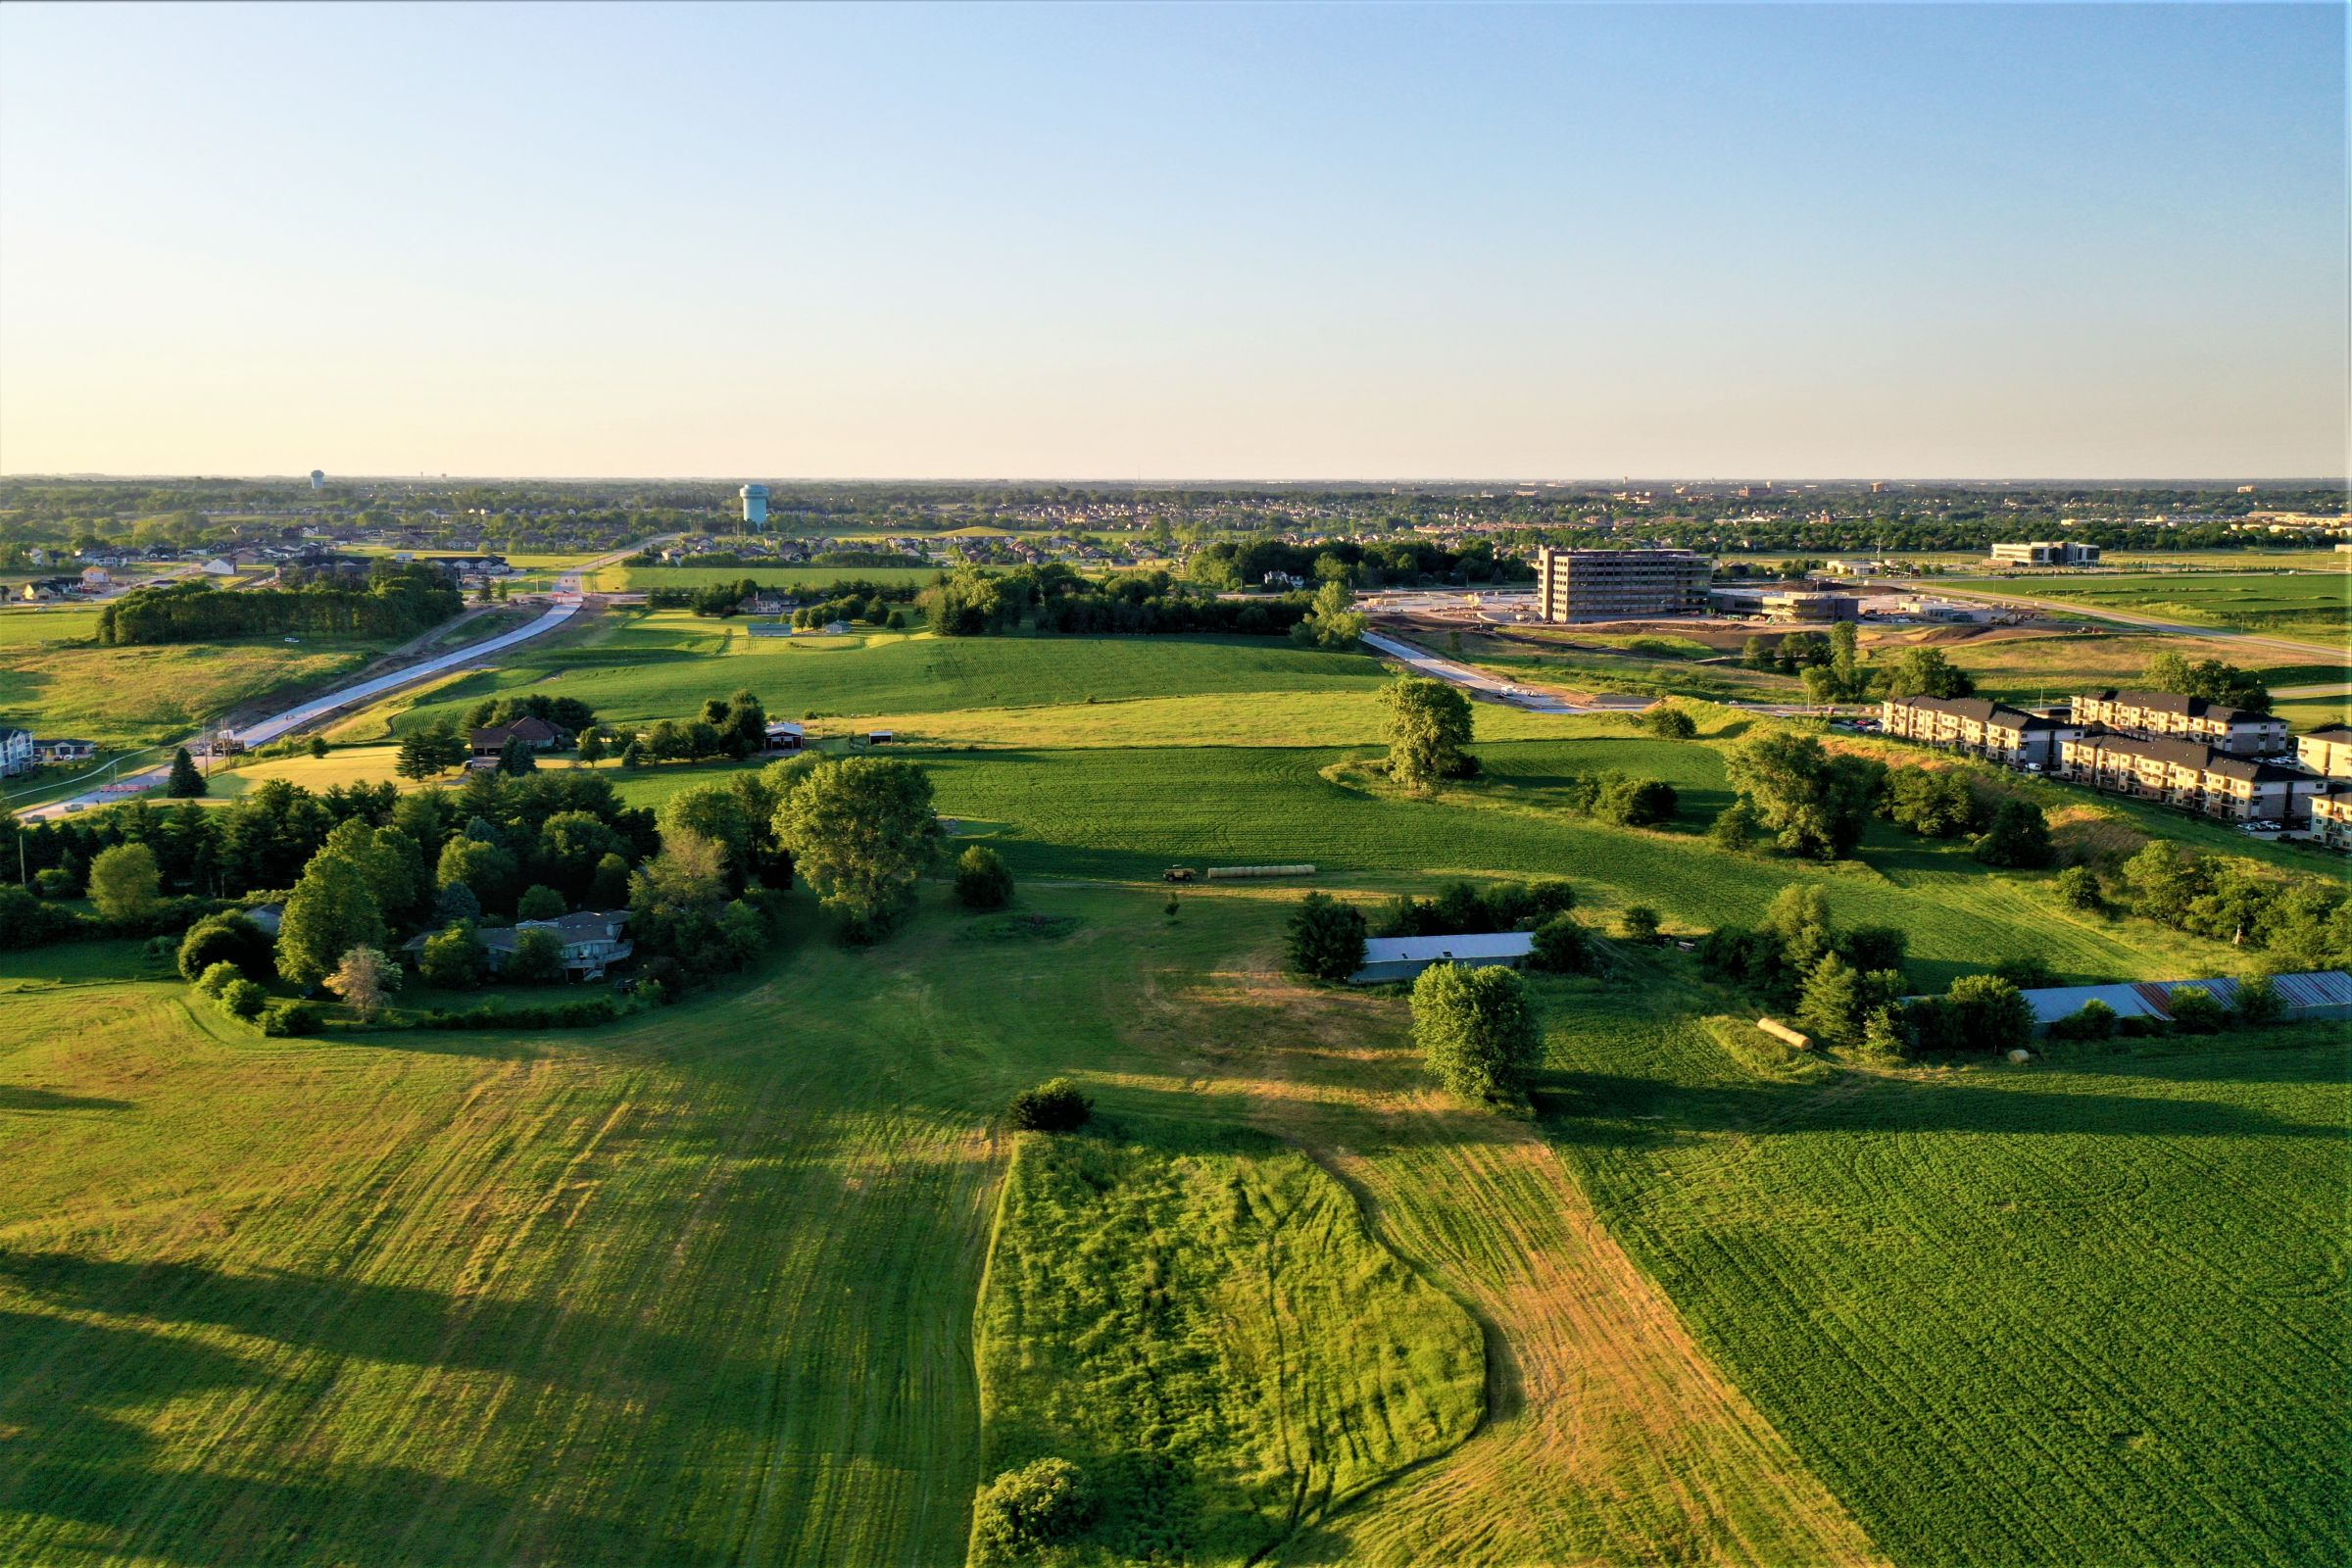 development-land-commercial-dallas-county-iowa-50-acres-listing-number-14399-1-2020-07-31-211536.jpg